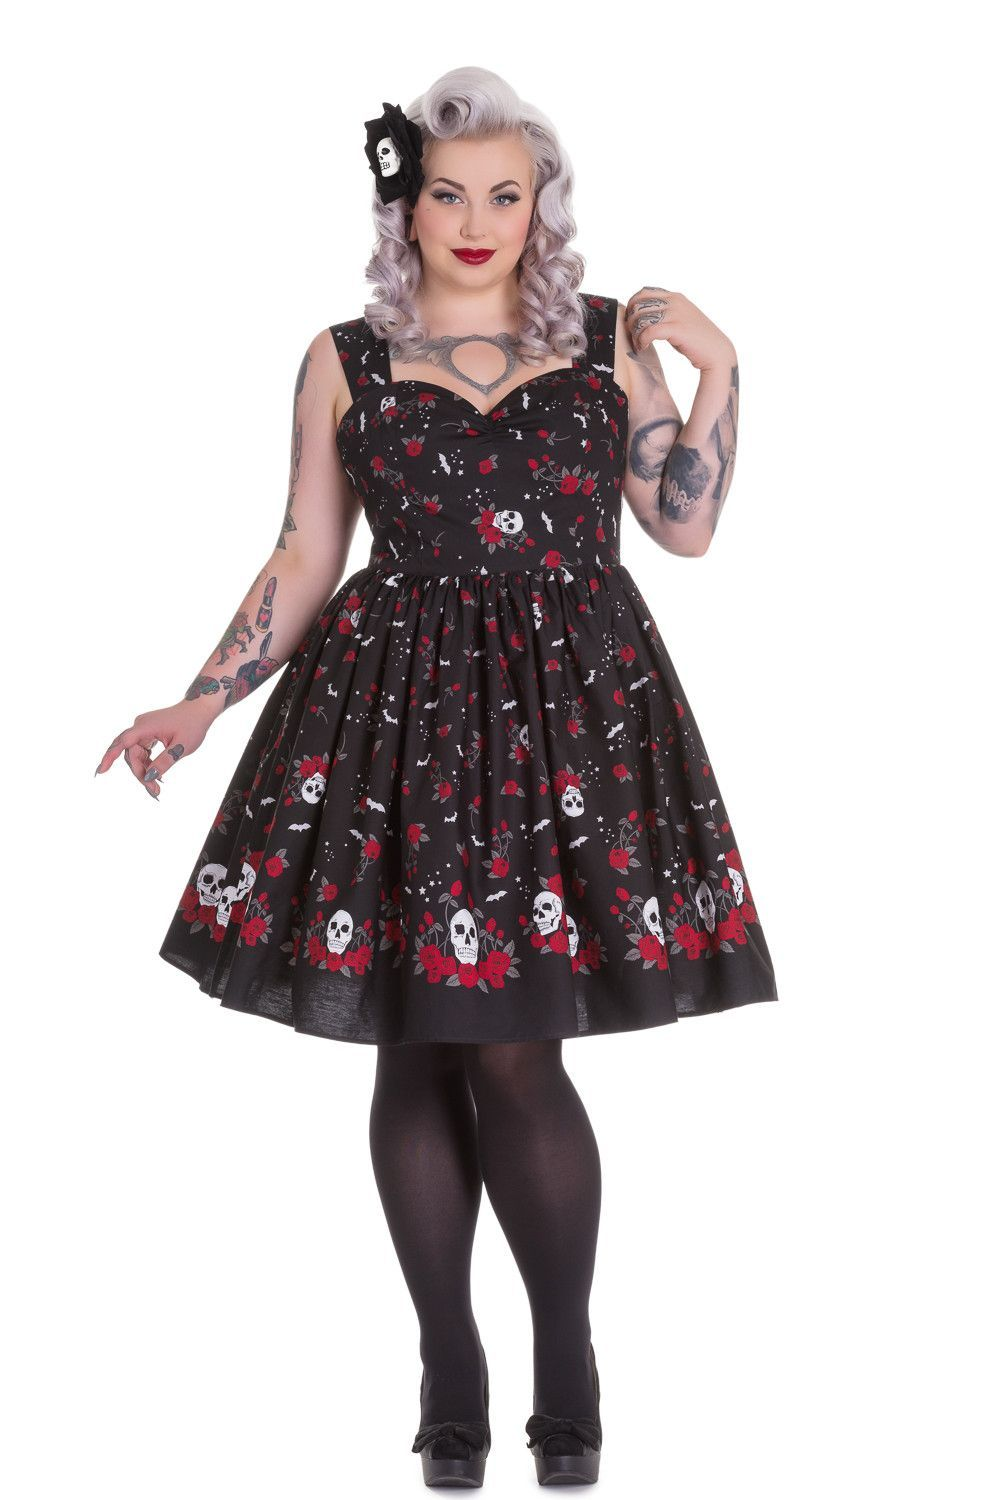 496e0f5c96bec Skelapparel - Hell Bunny Plus Size Rockabilly Goth Skull and Red Roses  Beautiful Soul Swing Dress